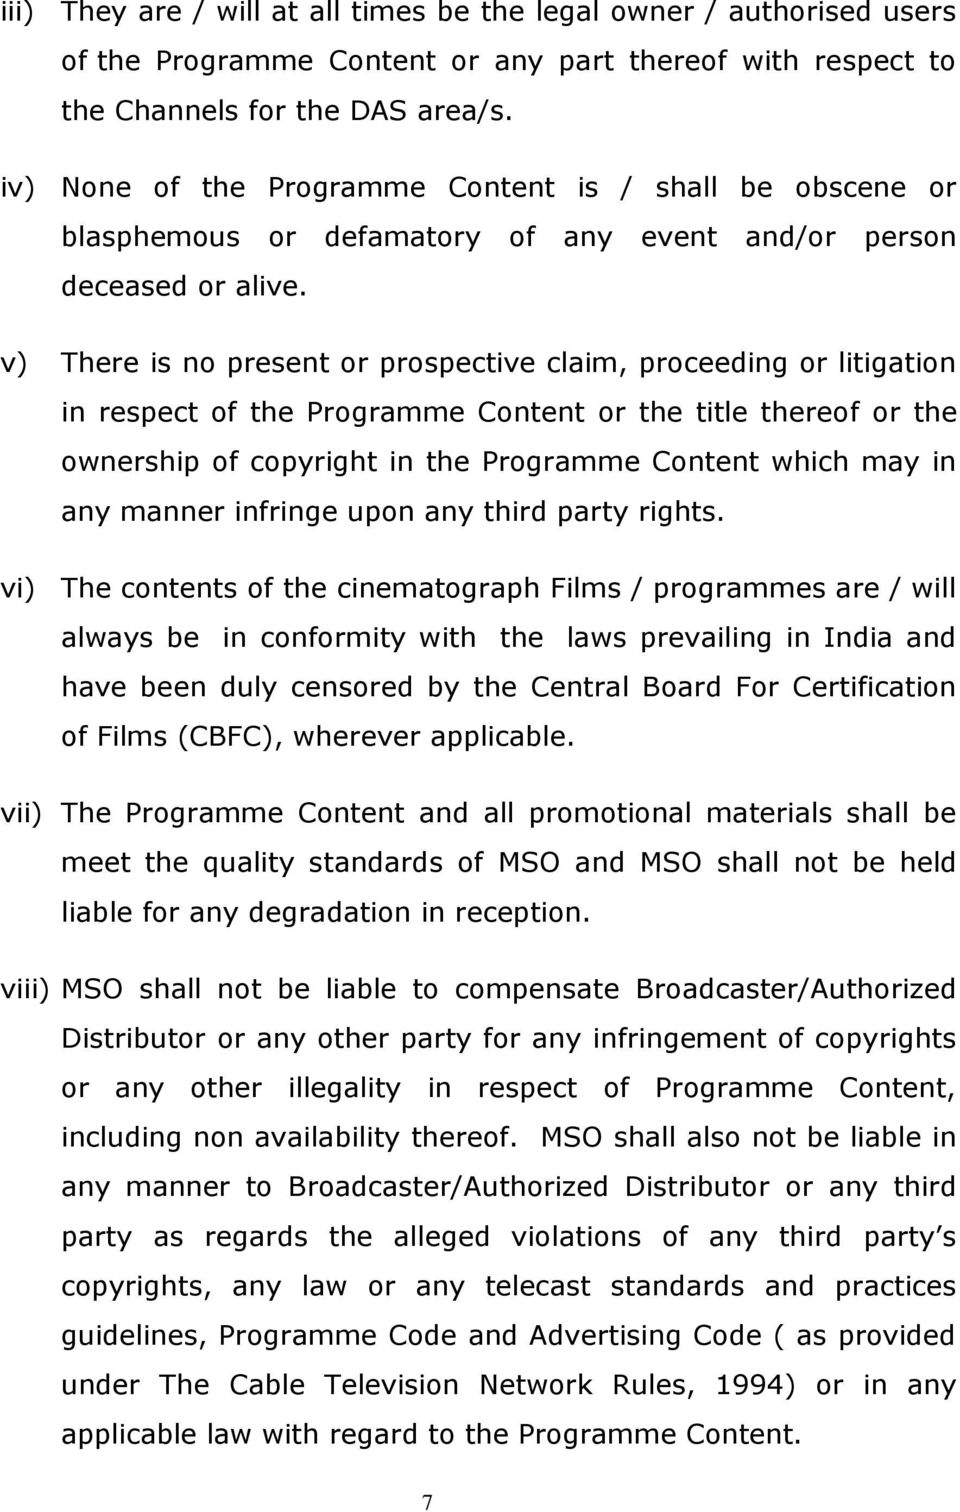 v) There is no present or prospective claim, proceeding or litigation in respect of the Programme Content or the title thereof or the ownership of copyright in the Programme Content which may in any